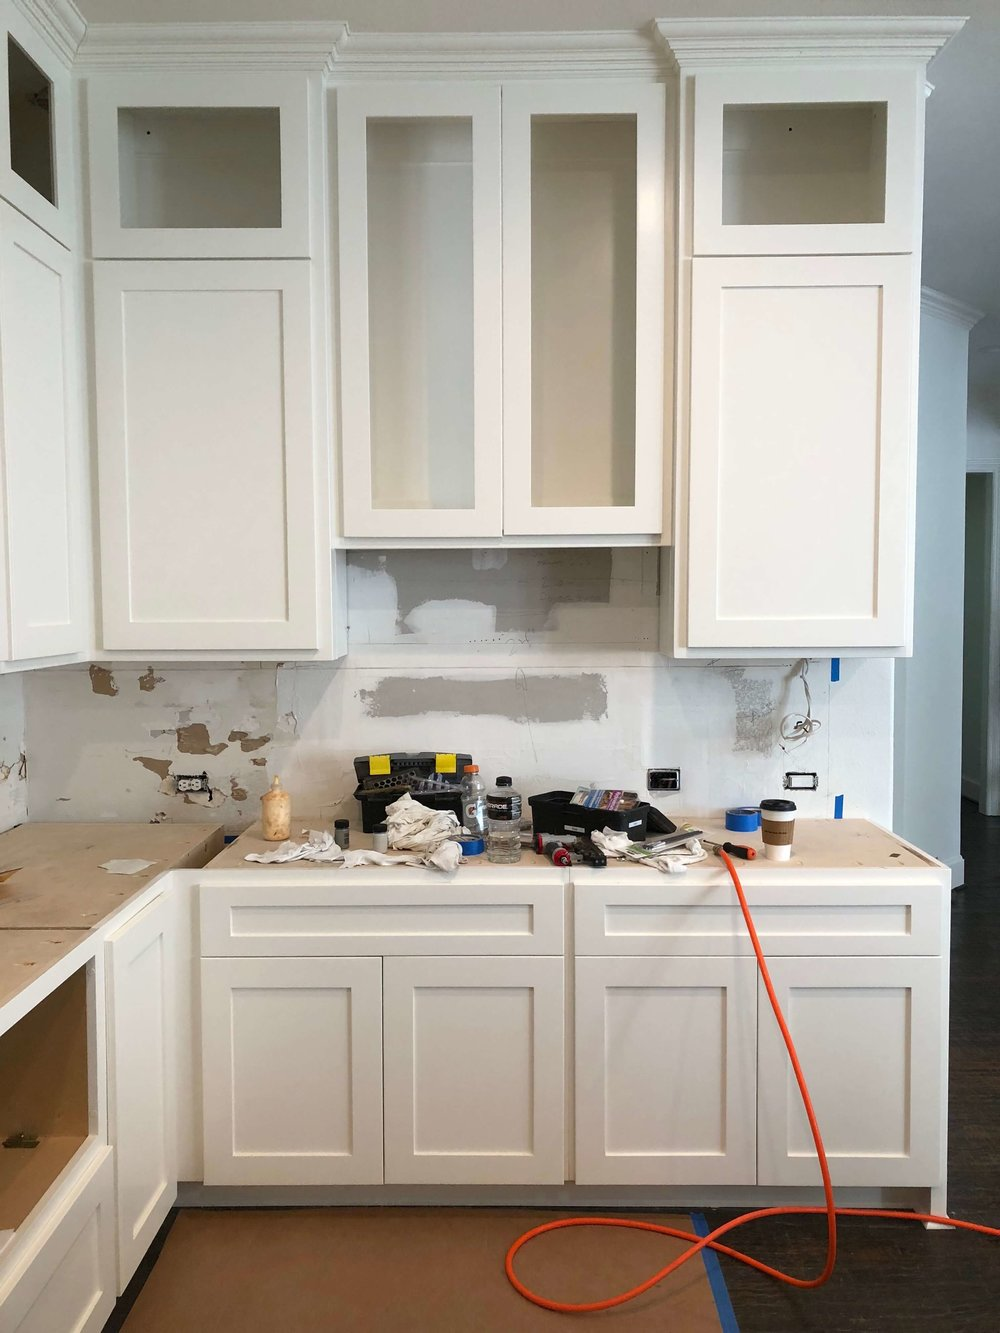 IN PROGRESS - The cabinetry looks fabulous here, crisp and light. Love the cabinets to the ceiling and the absence of the window to the hall. #kitchenremodelideas #whitekitchen #kitchenremodel